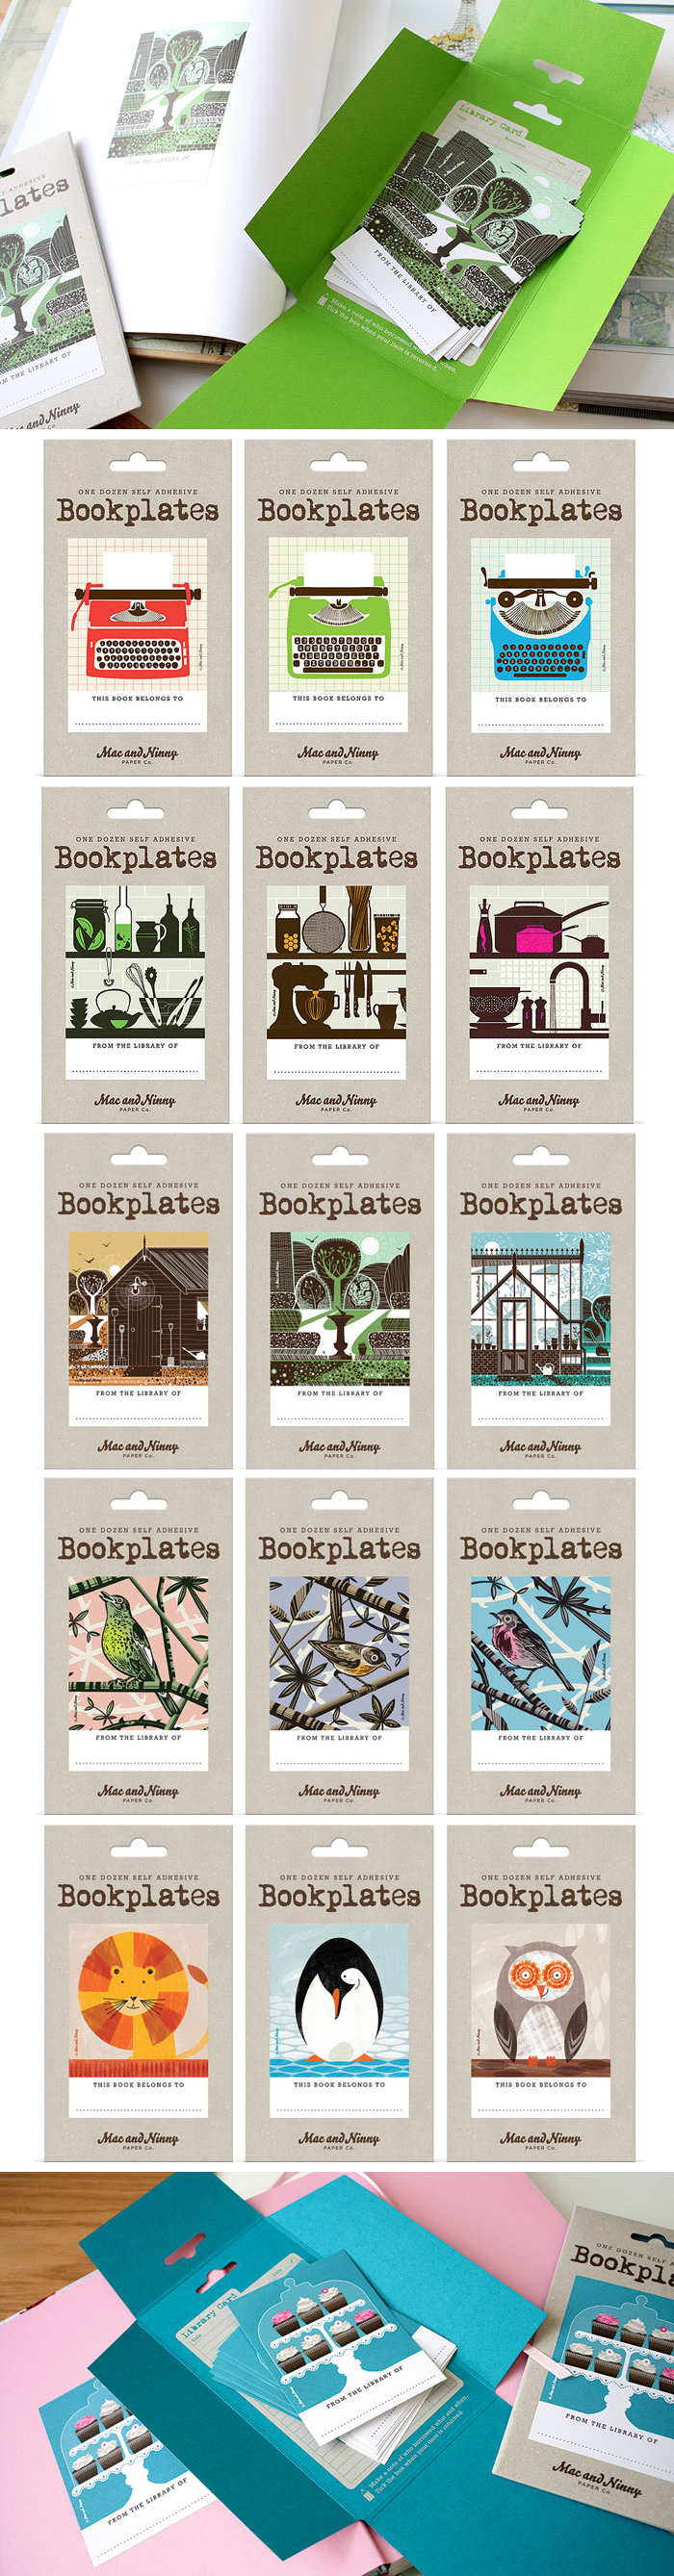 Mac & Ninny bookplates nice colours and illustrations